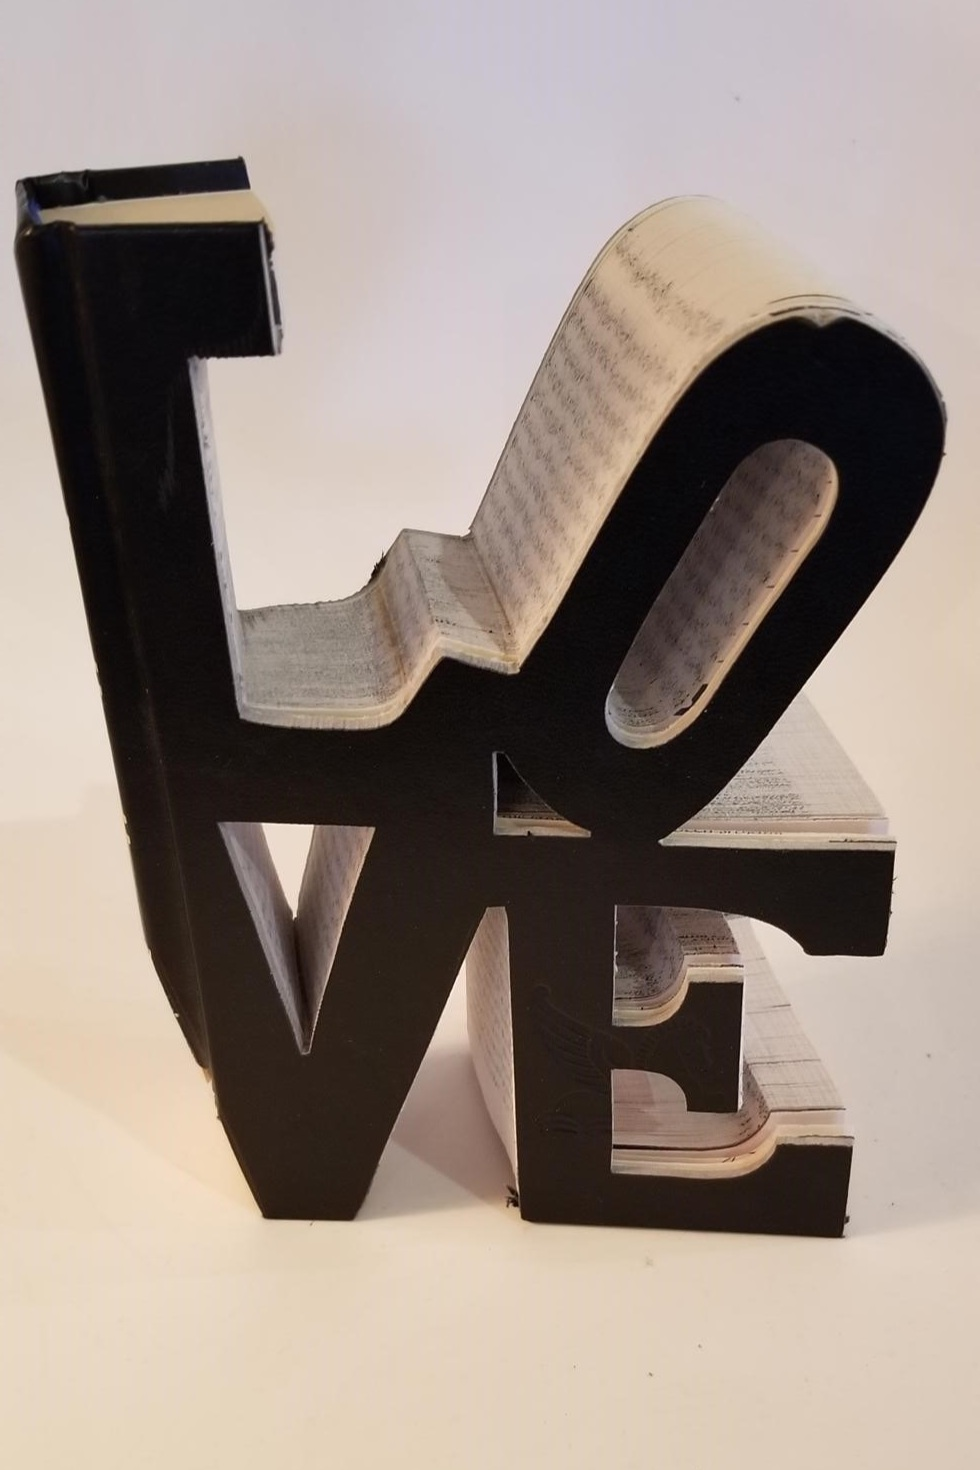 On a more whimsical note, this L-O-V-E book was rescued from the library's trash bin; an old Reader's Digest series transformed into art. We love a crafty upcycle!